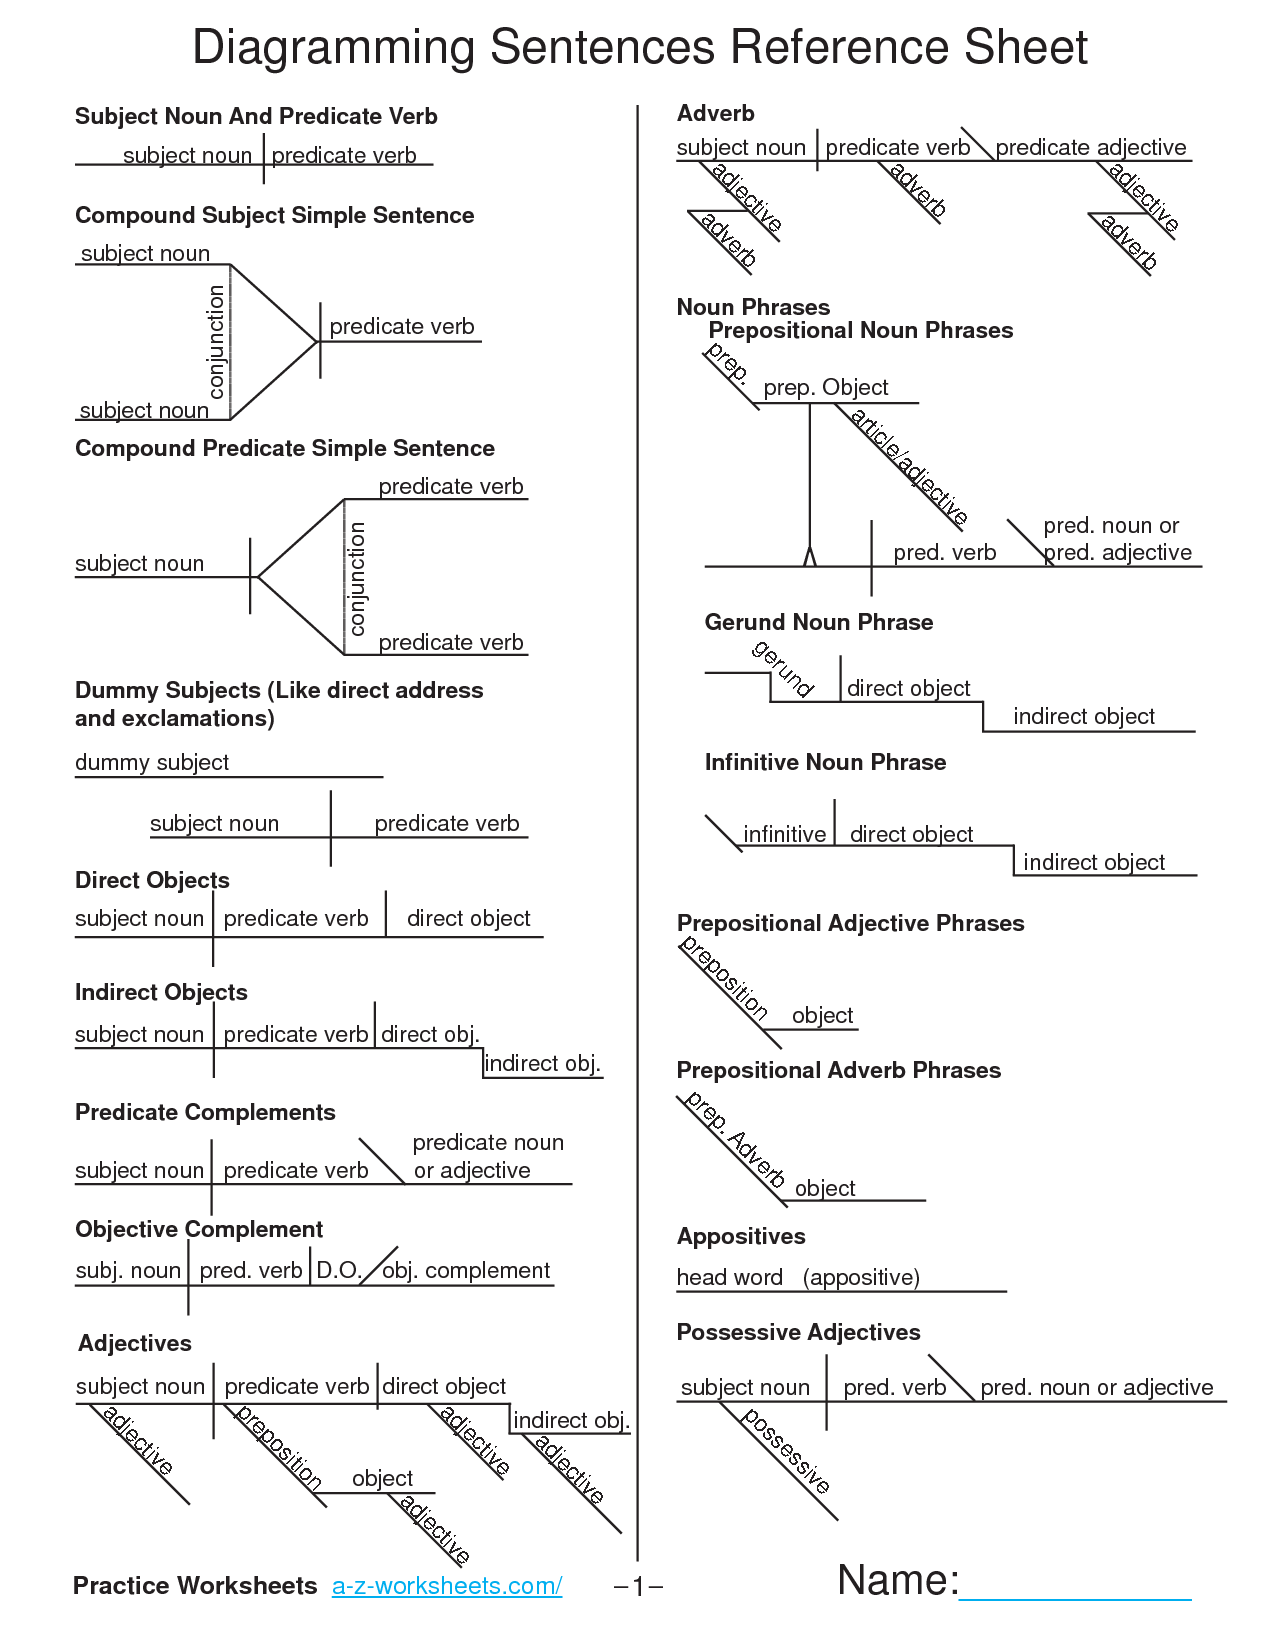 sentence diagram worksheets simple subject and simple predicate diagramming sentences worksheets [ 1275 x 1650 Pixel ]